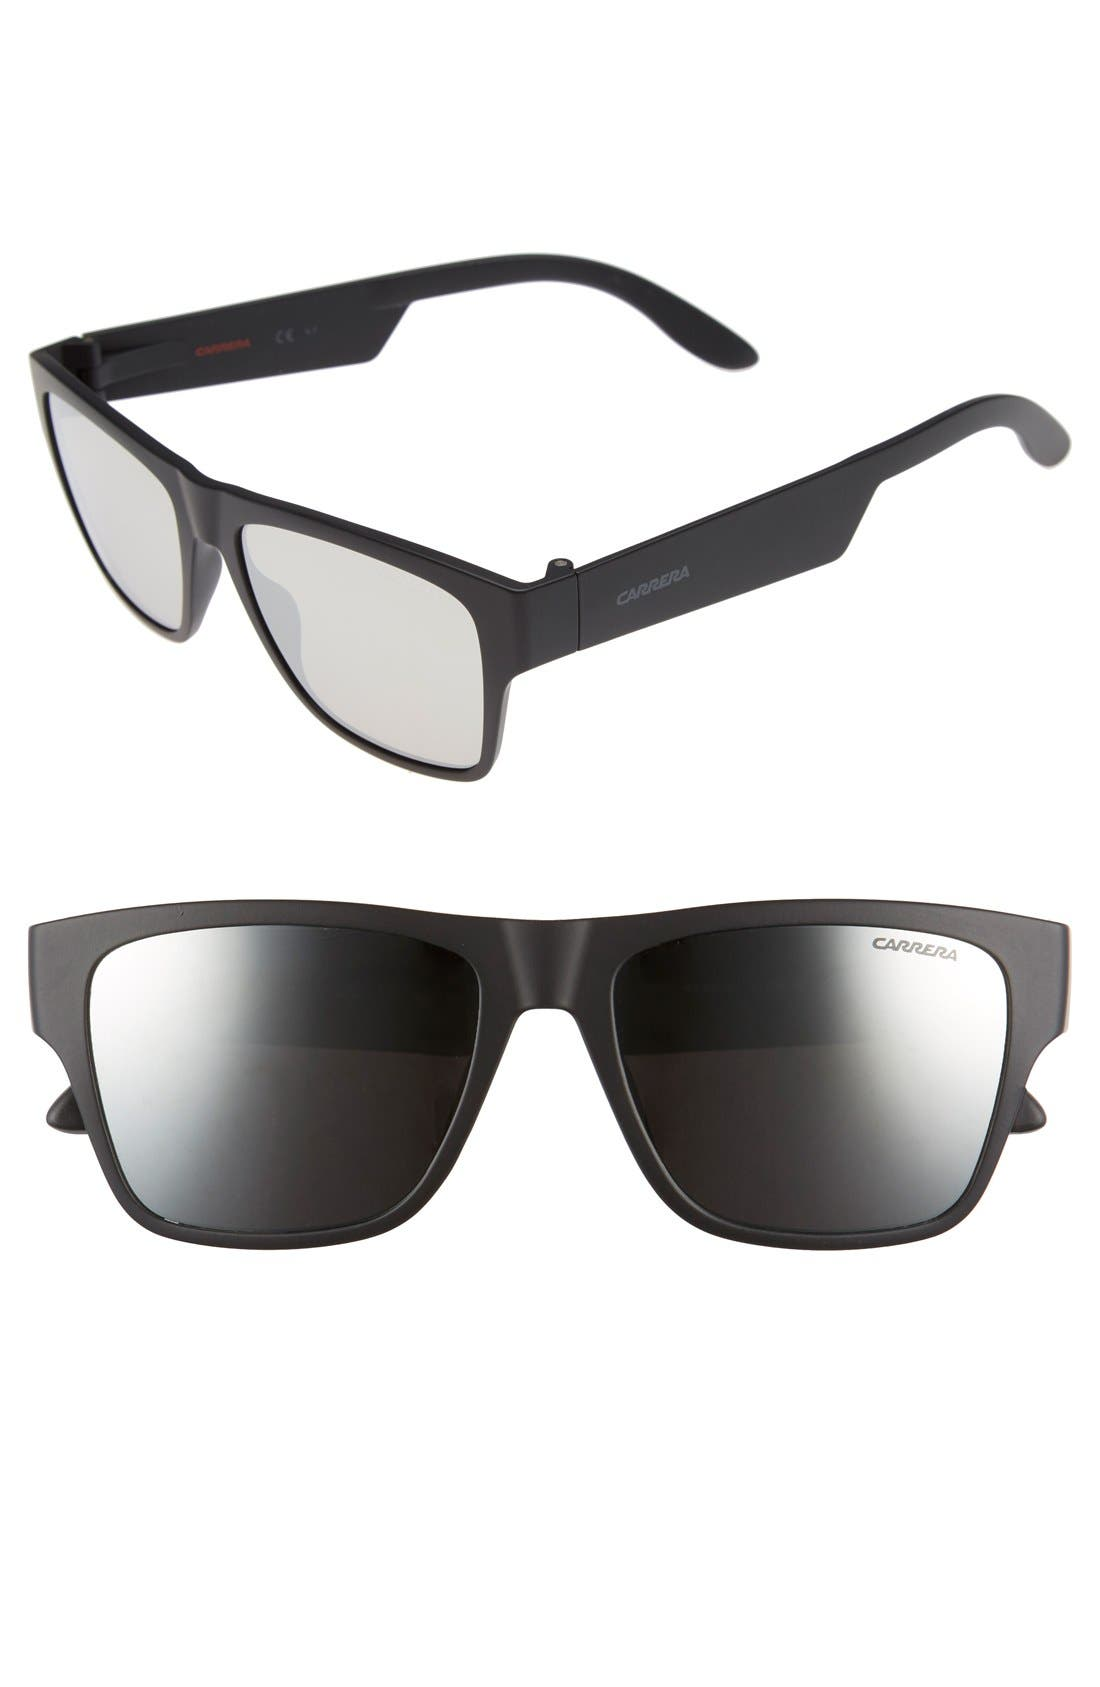 Alternate Image 1 Selected - Carrera Eyewear 55mm Retro Sunglasses